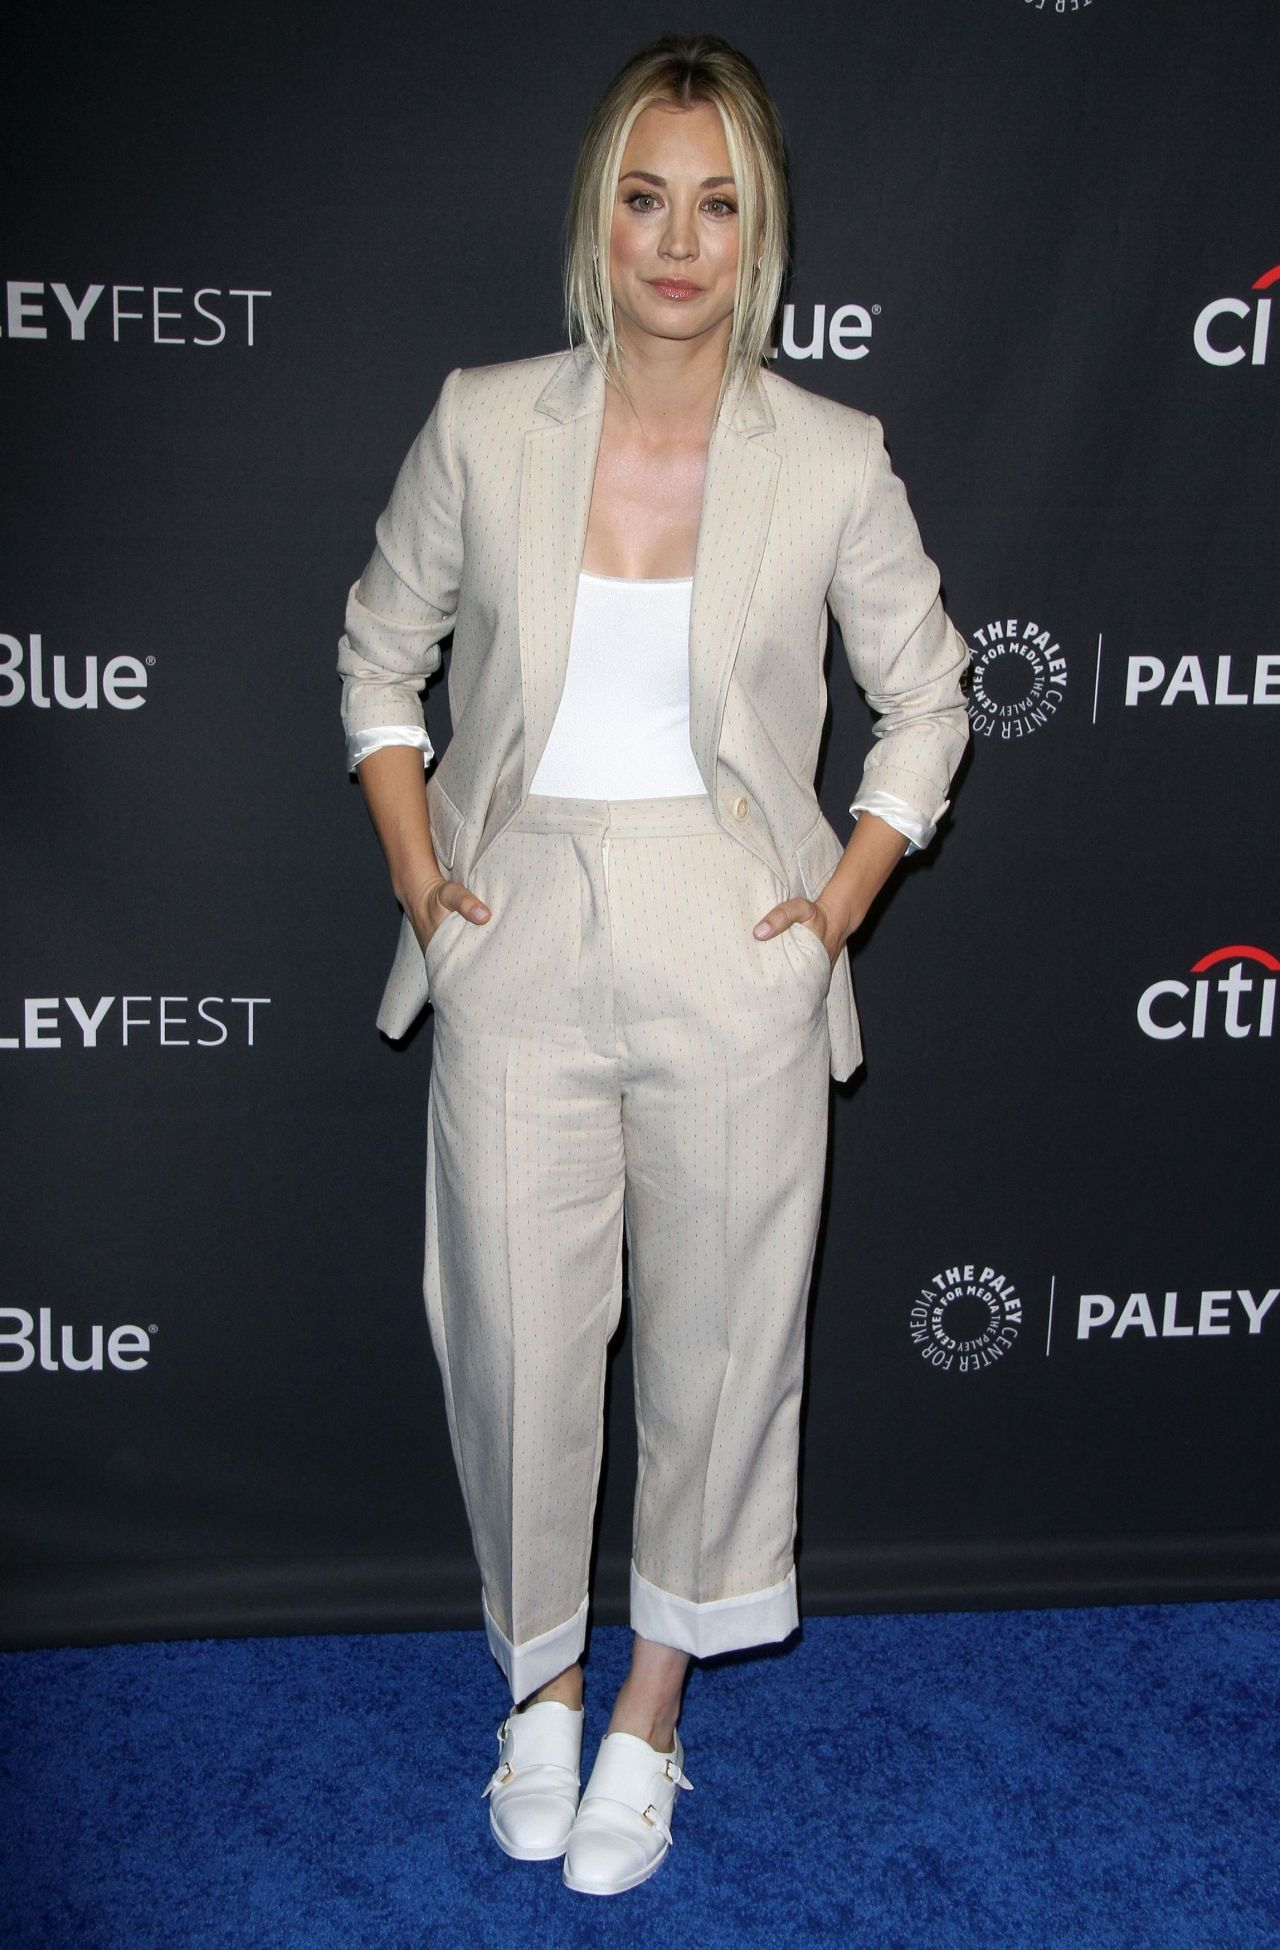 http://celebmafia.com/wp-content/uploads/2018/03/kaley-cuoco-the-big-bang-theory-and-young-sheldon-tv-show-presentation-at-paleyfest-in-la-12.jpg